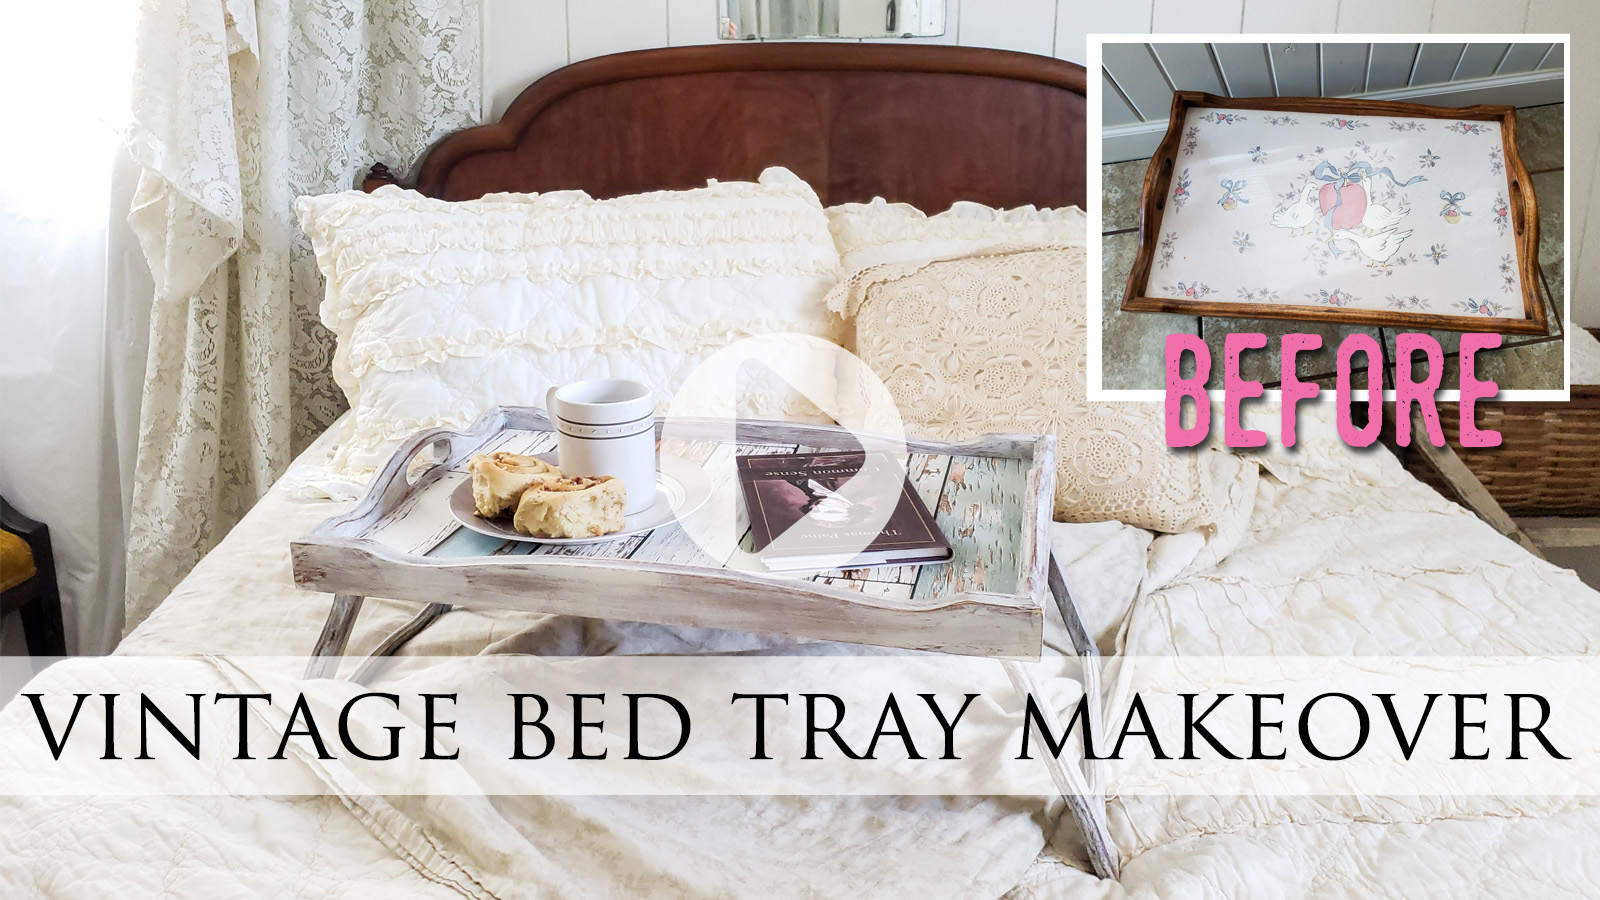 DIY Video Tutorial for Vintage Bed Tray Makeover by Larissa of Prodigal Pieces   prodigalpieces.com